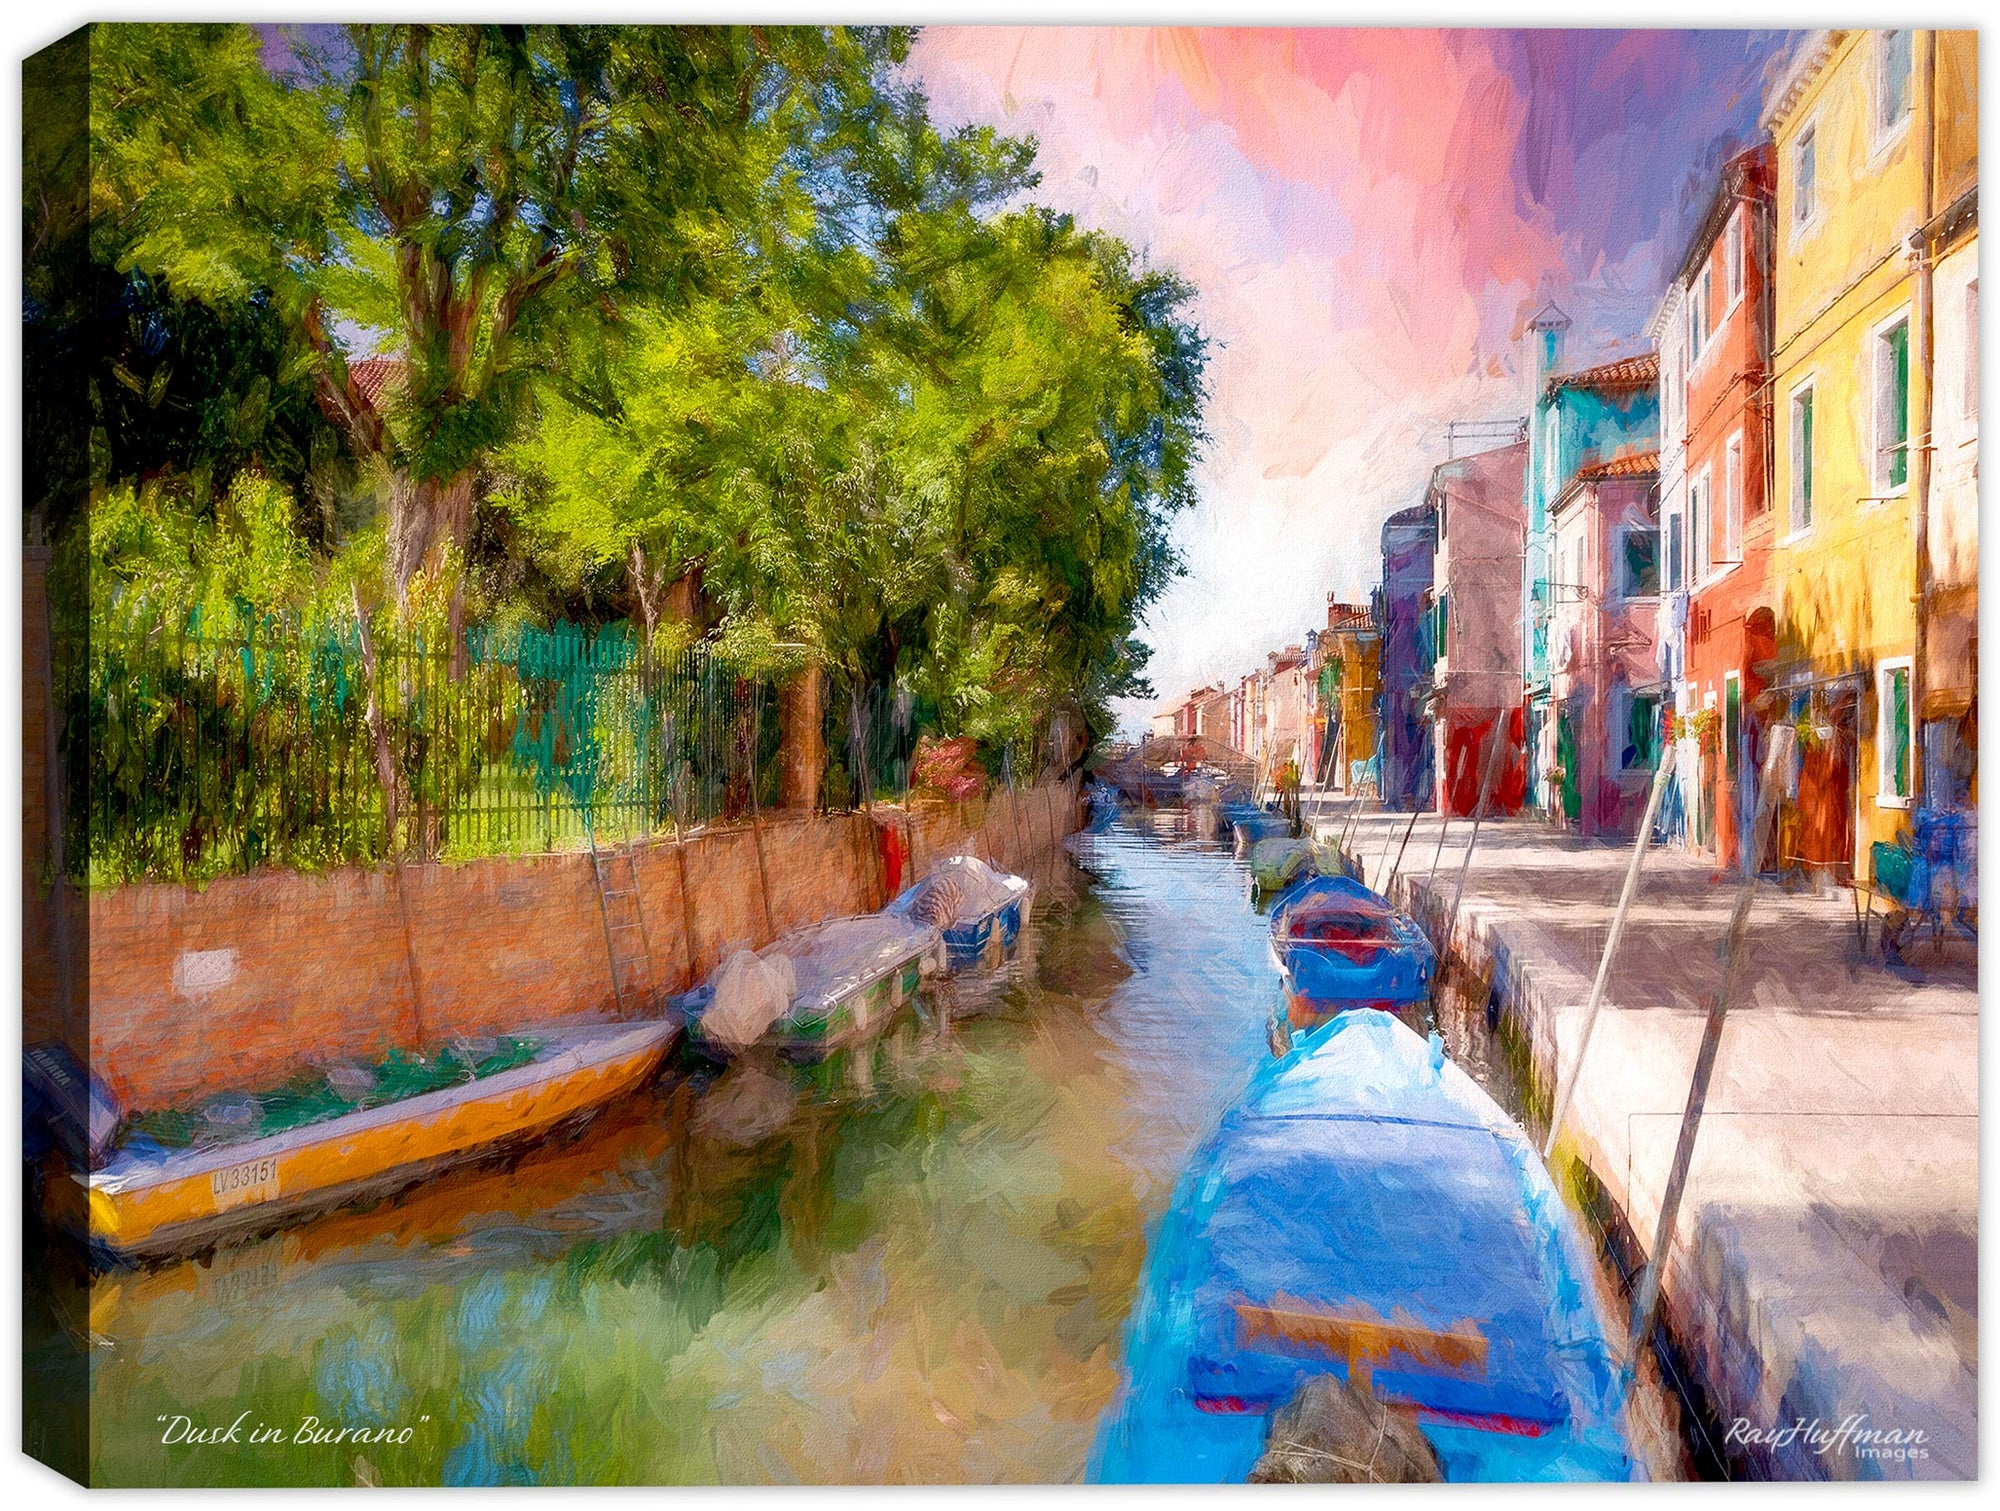 Dusk in Burano - Painting on Canvas